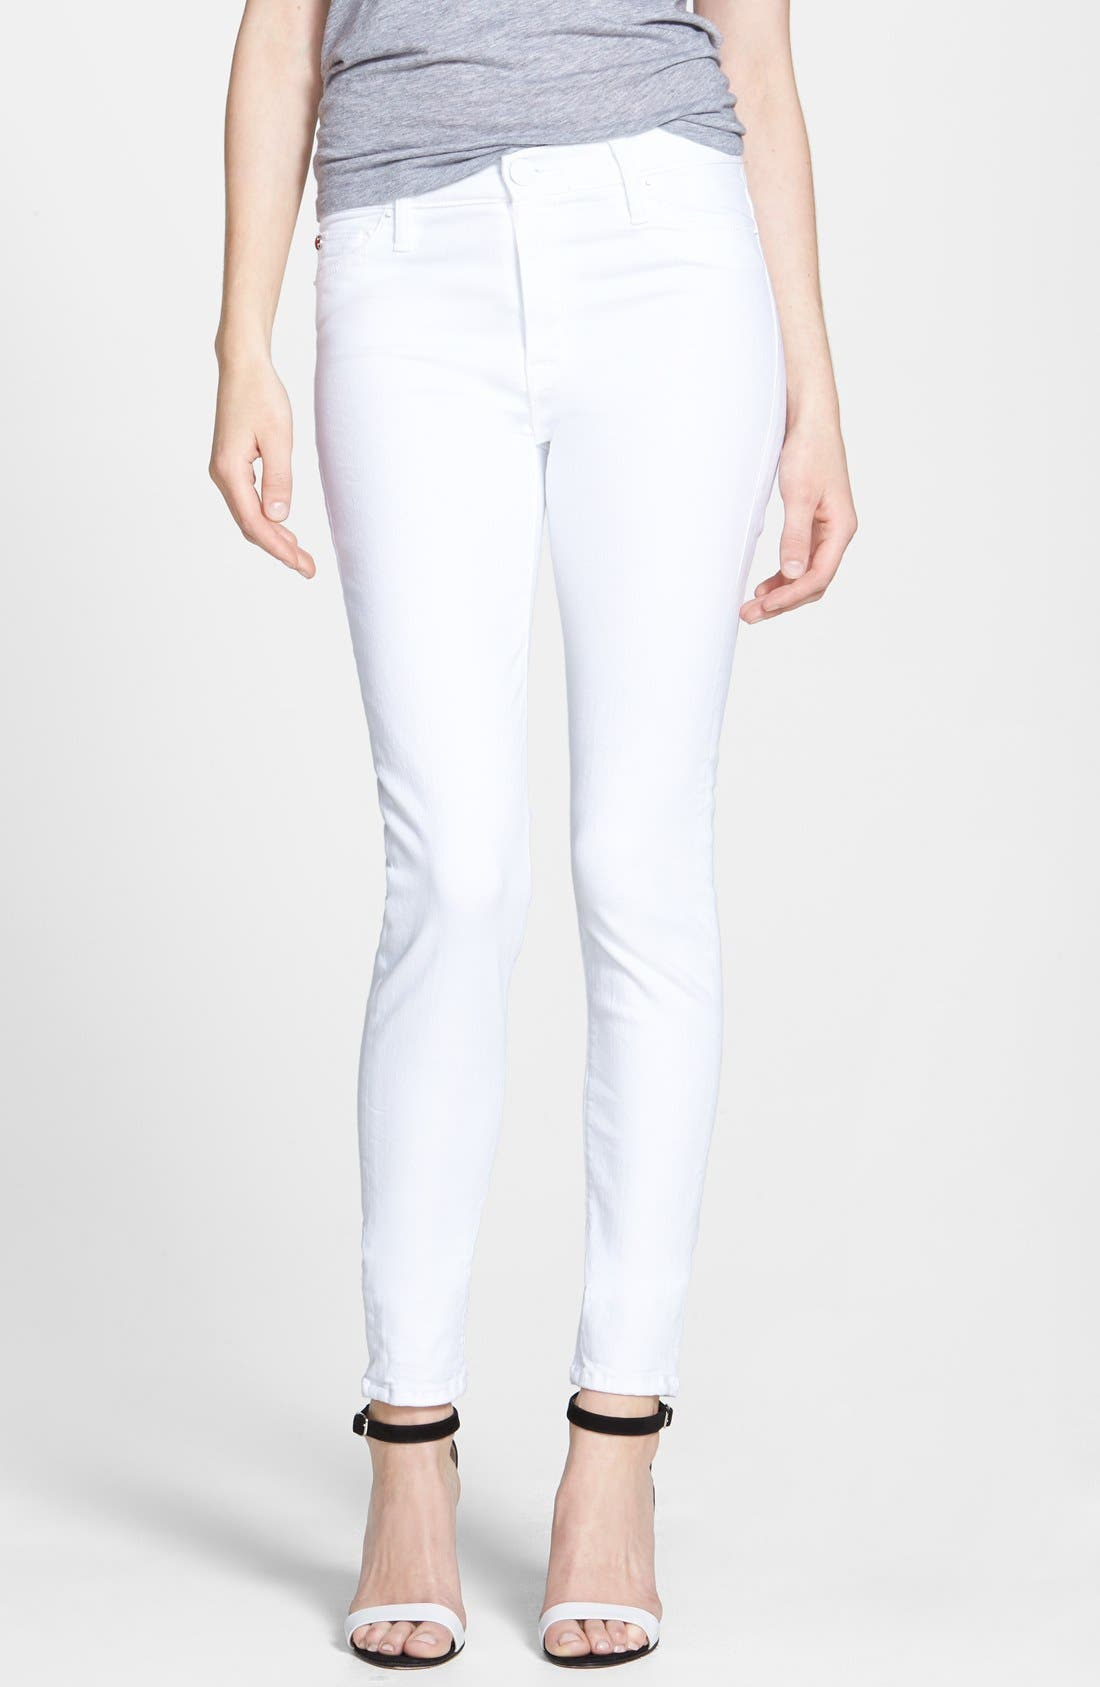 Alternate Image 1 Selected - Hudson Jeans 'Nico' Skinny Stretch Jeans (White)